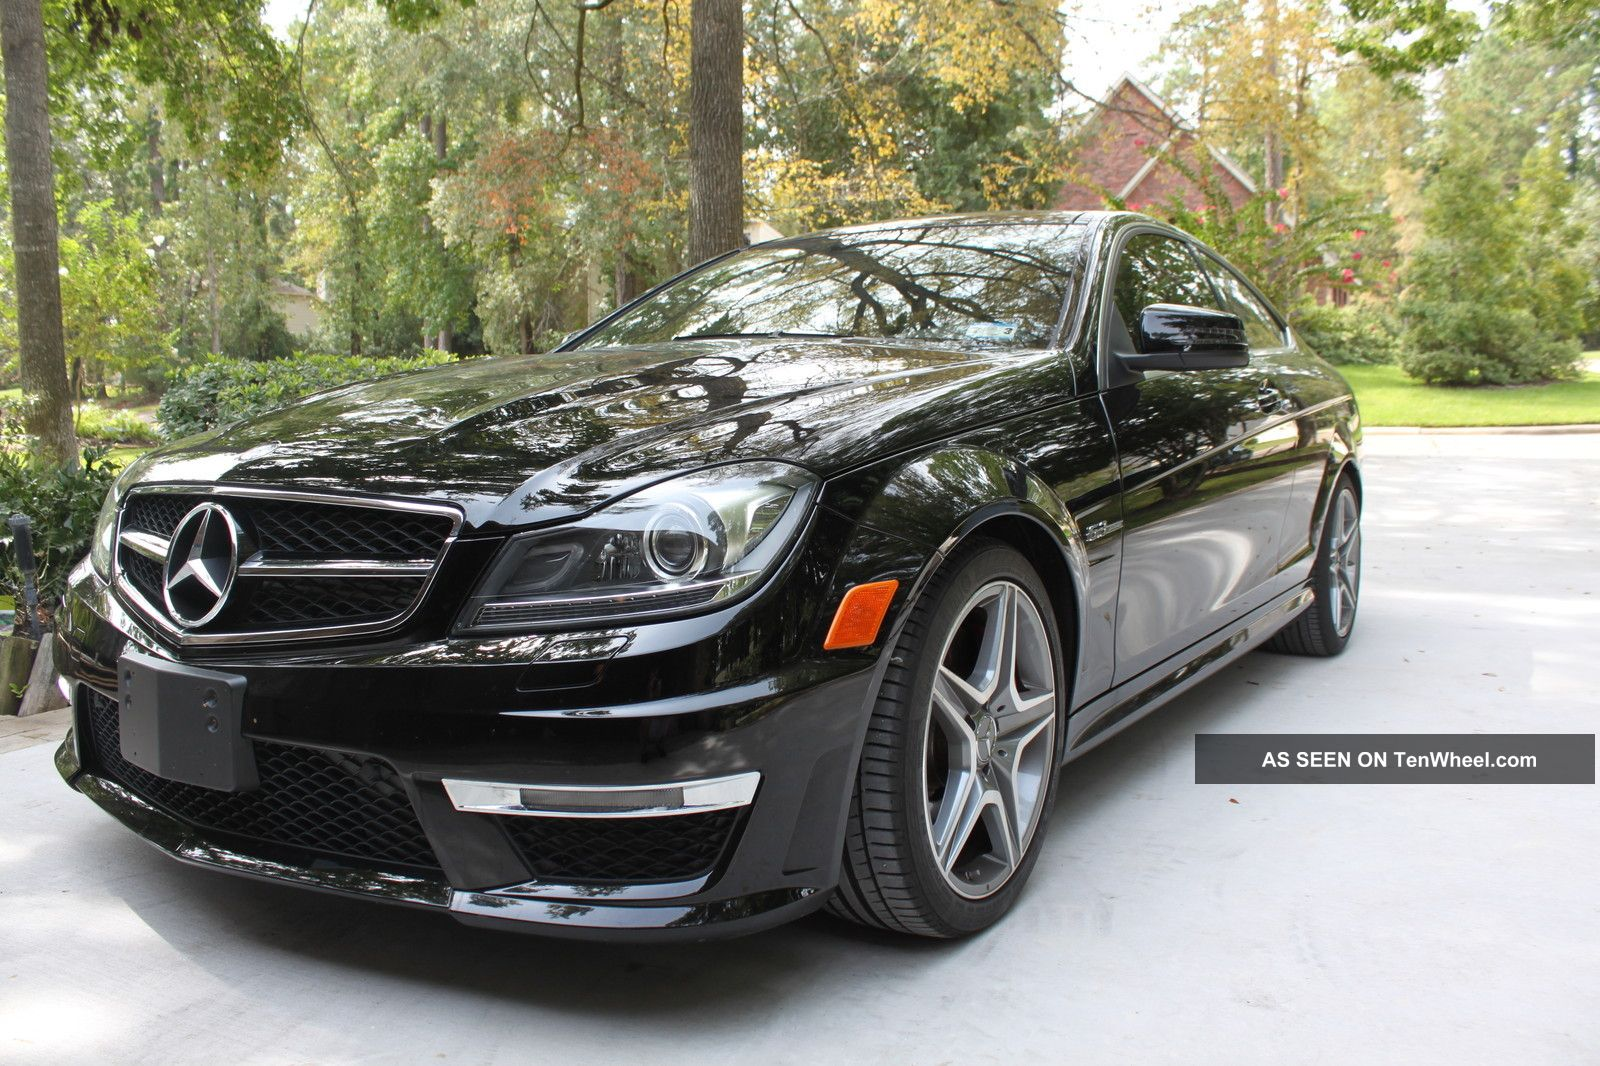 2012 mercedes benz c63 amg coupe amg developement package - 2012 mercedes c63 amg coupe ...